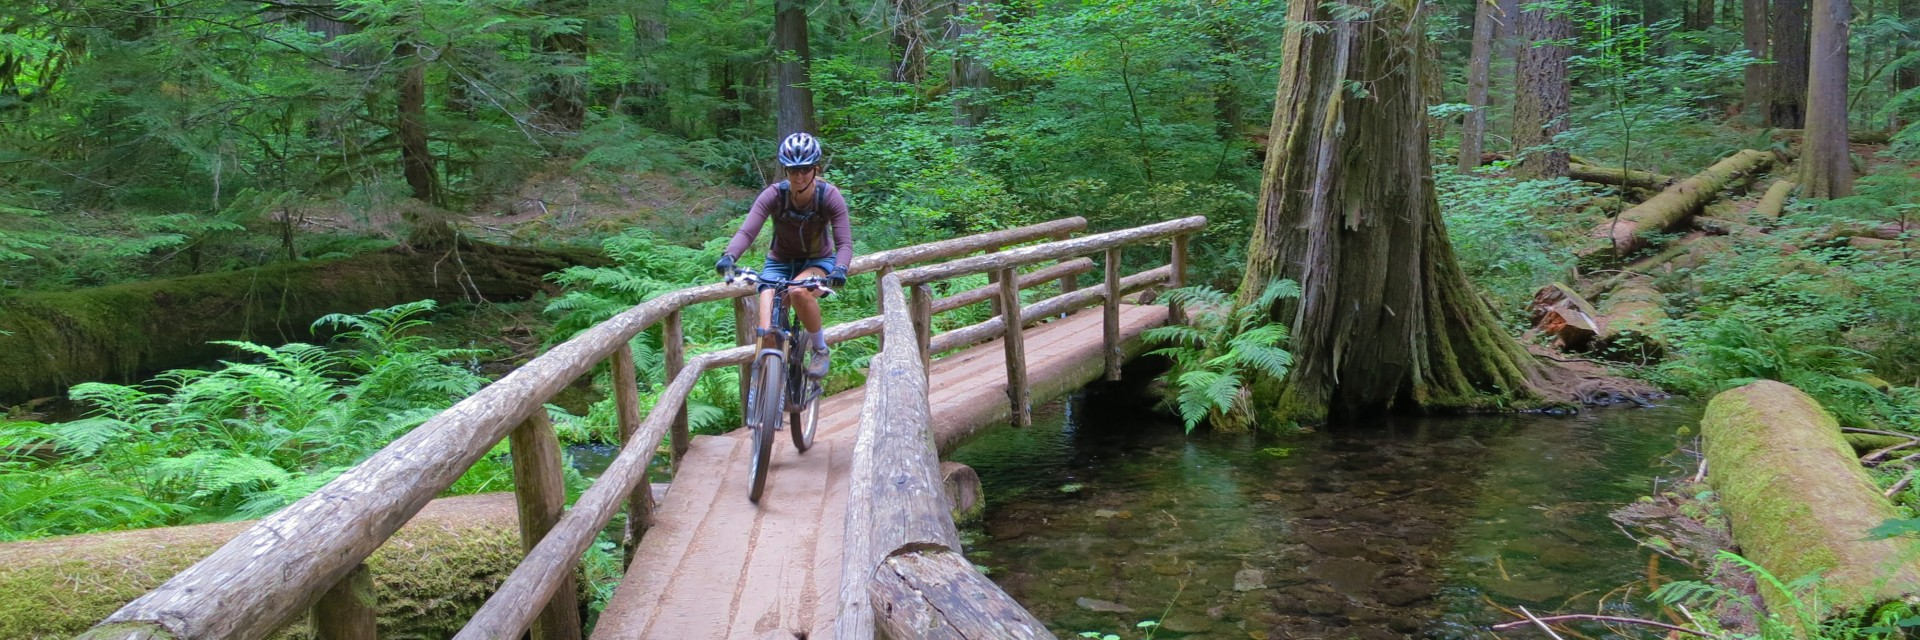 The Oregon Cascade Singletrack tour involves lots of wooden bridges